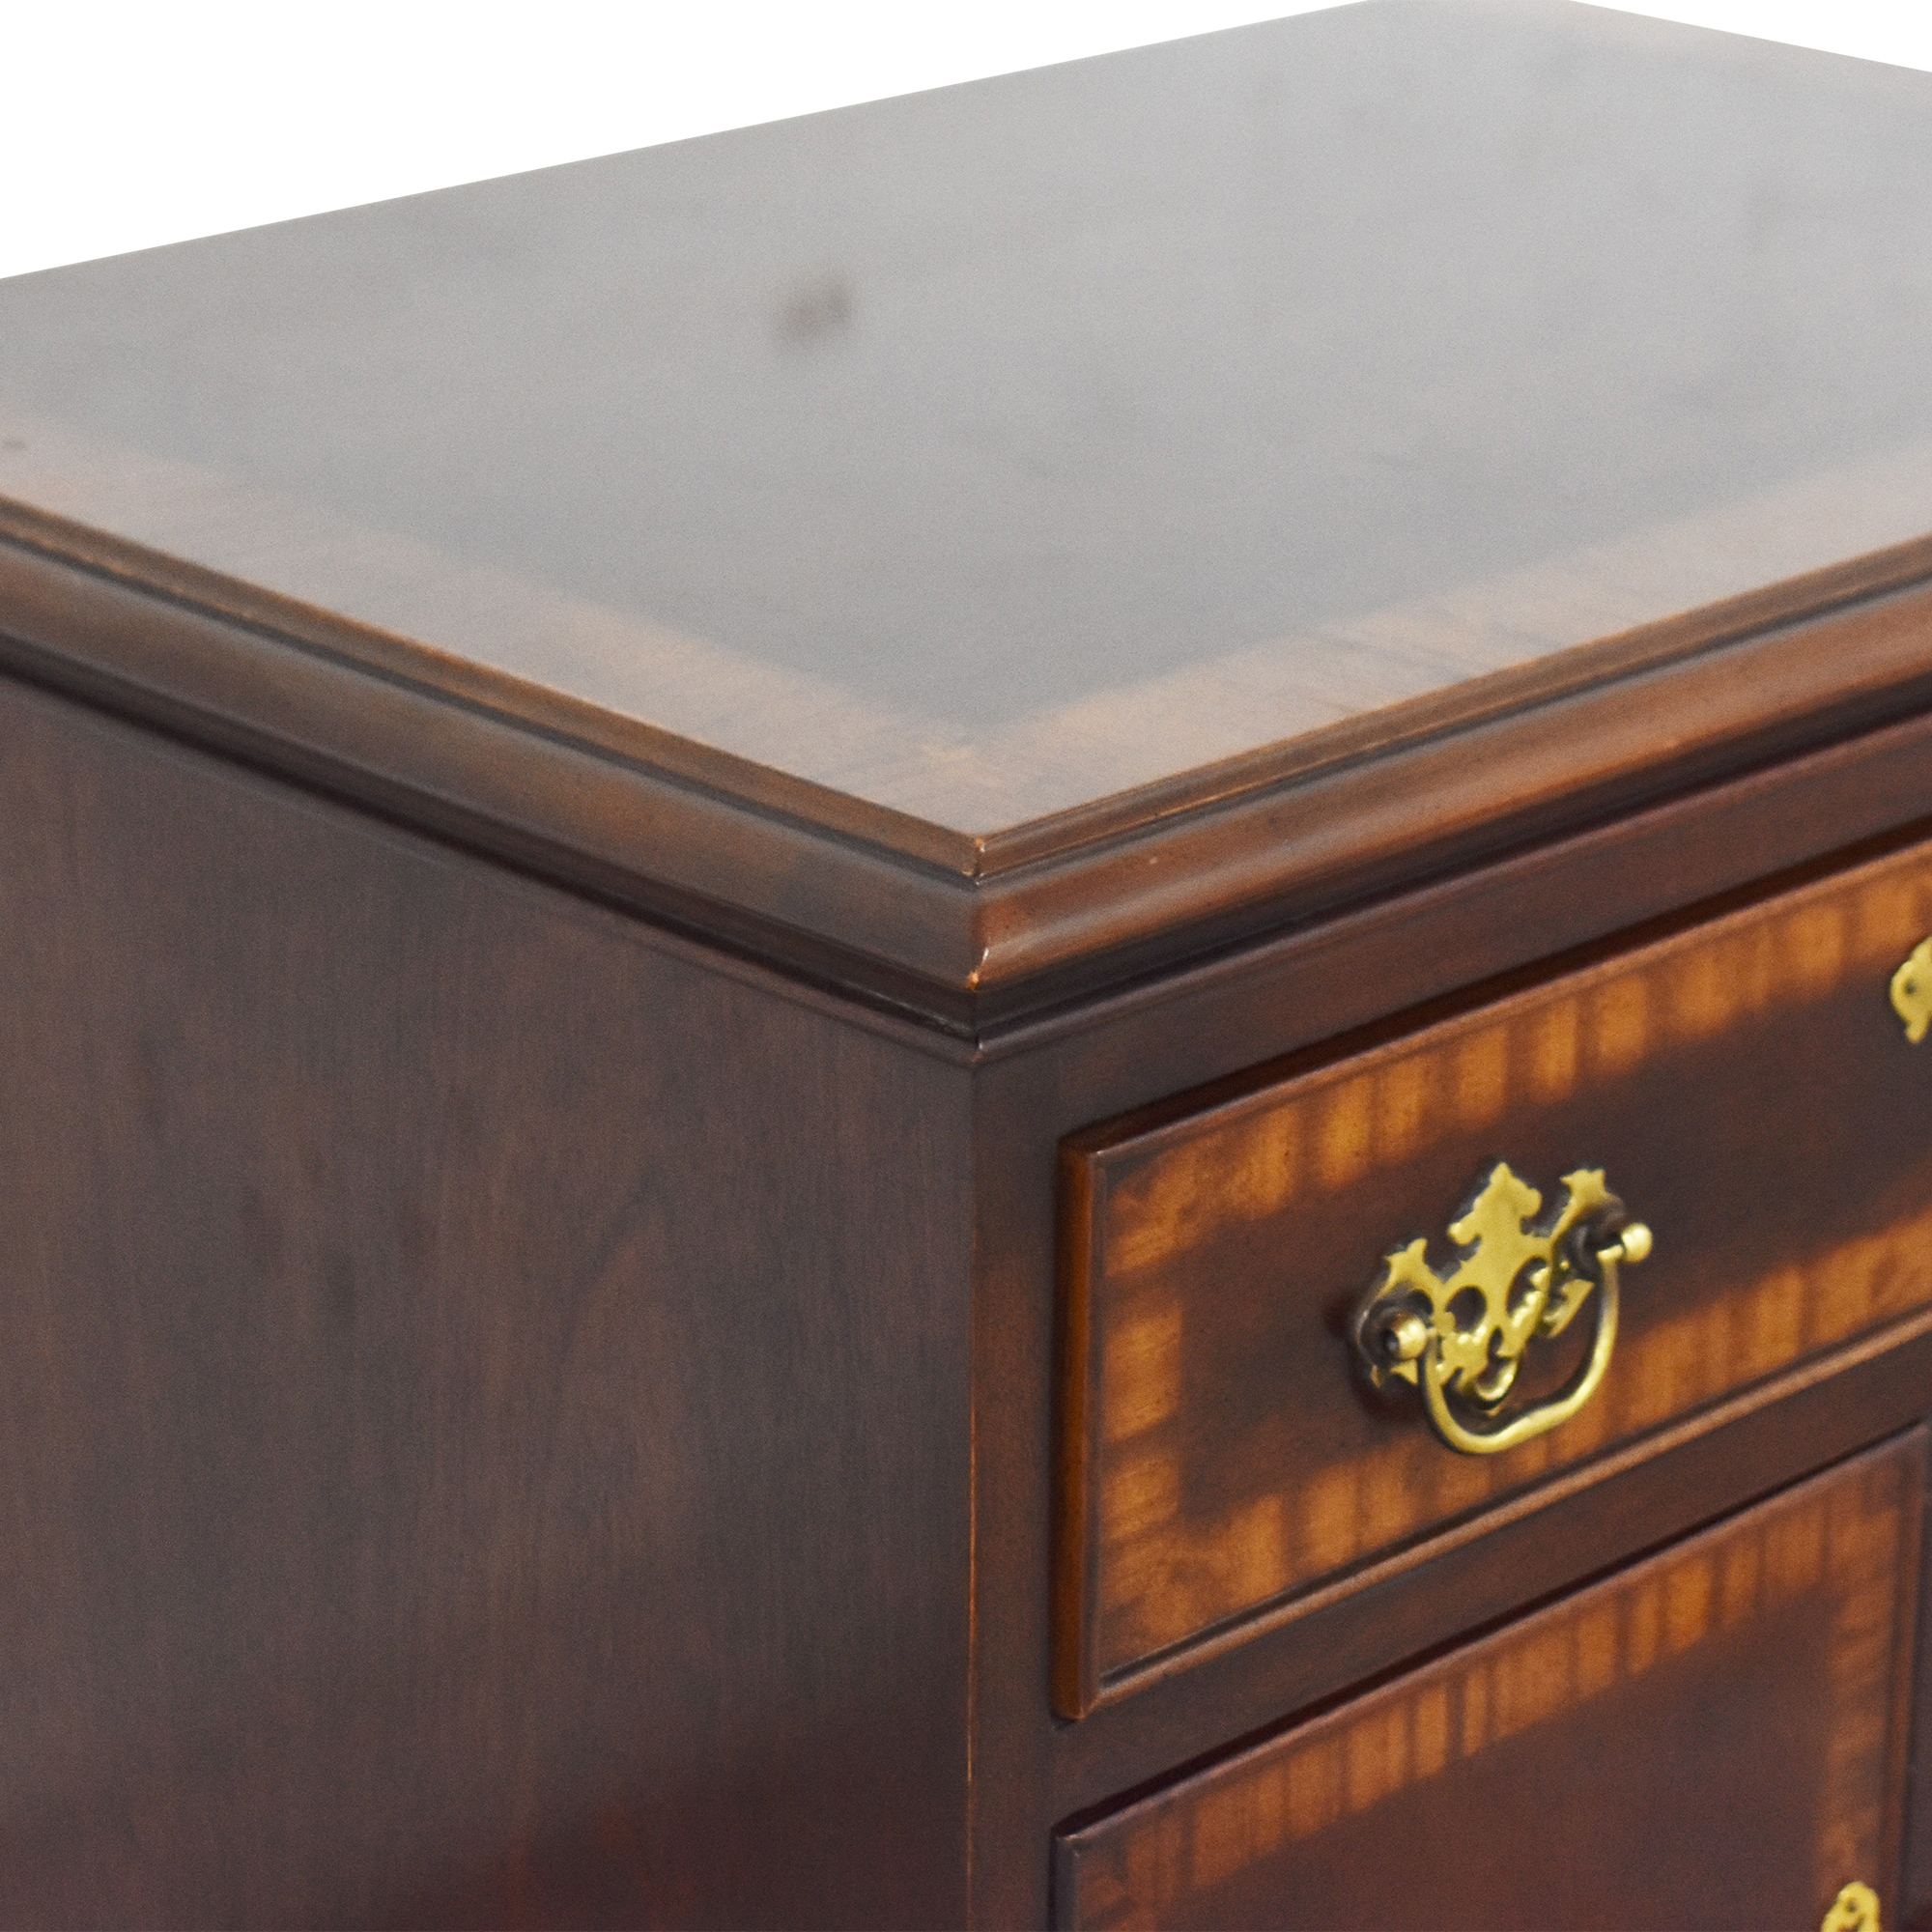 Drexel Chippendale Style Nightstand / End Tables